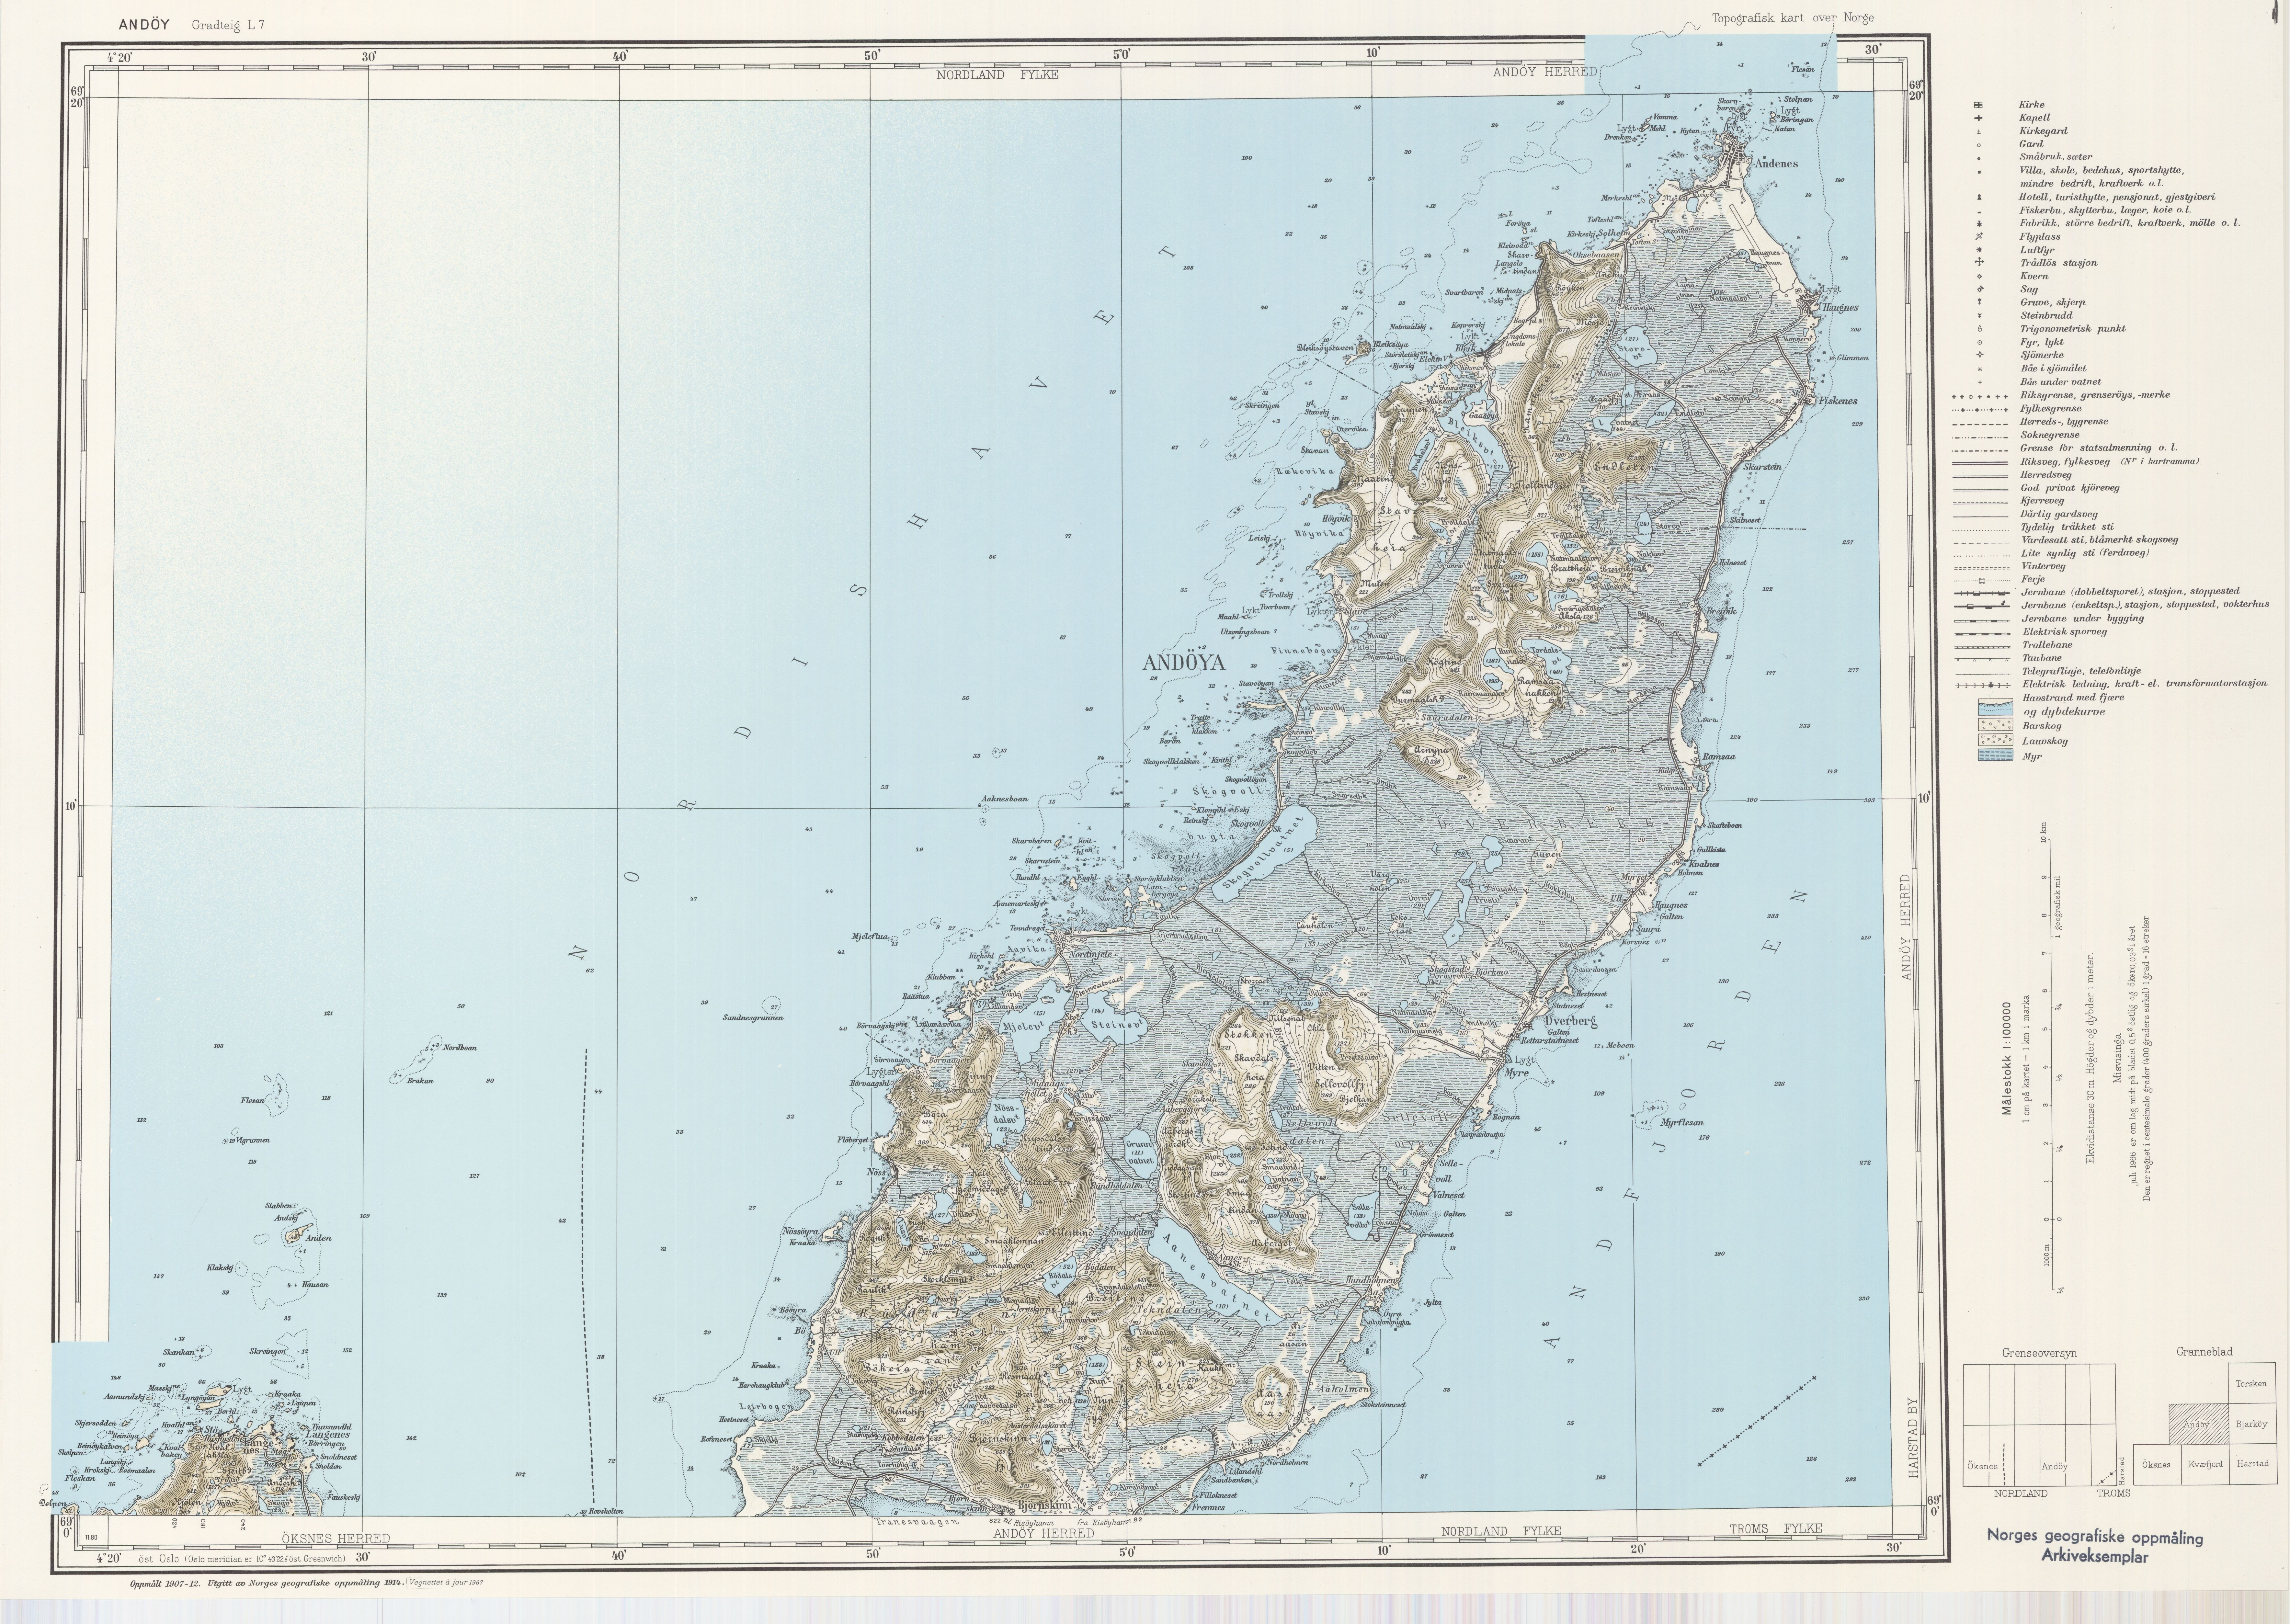 Topographic Map Of Norway.File Topographic Map Of Norway L7 Andoya 1967 Jpg Wikimedia Commons